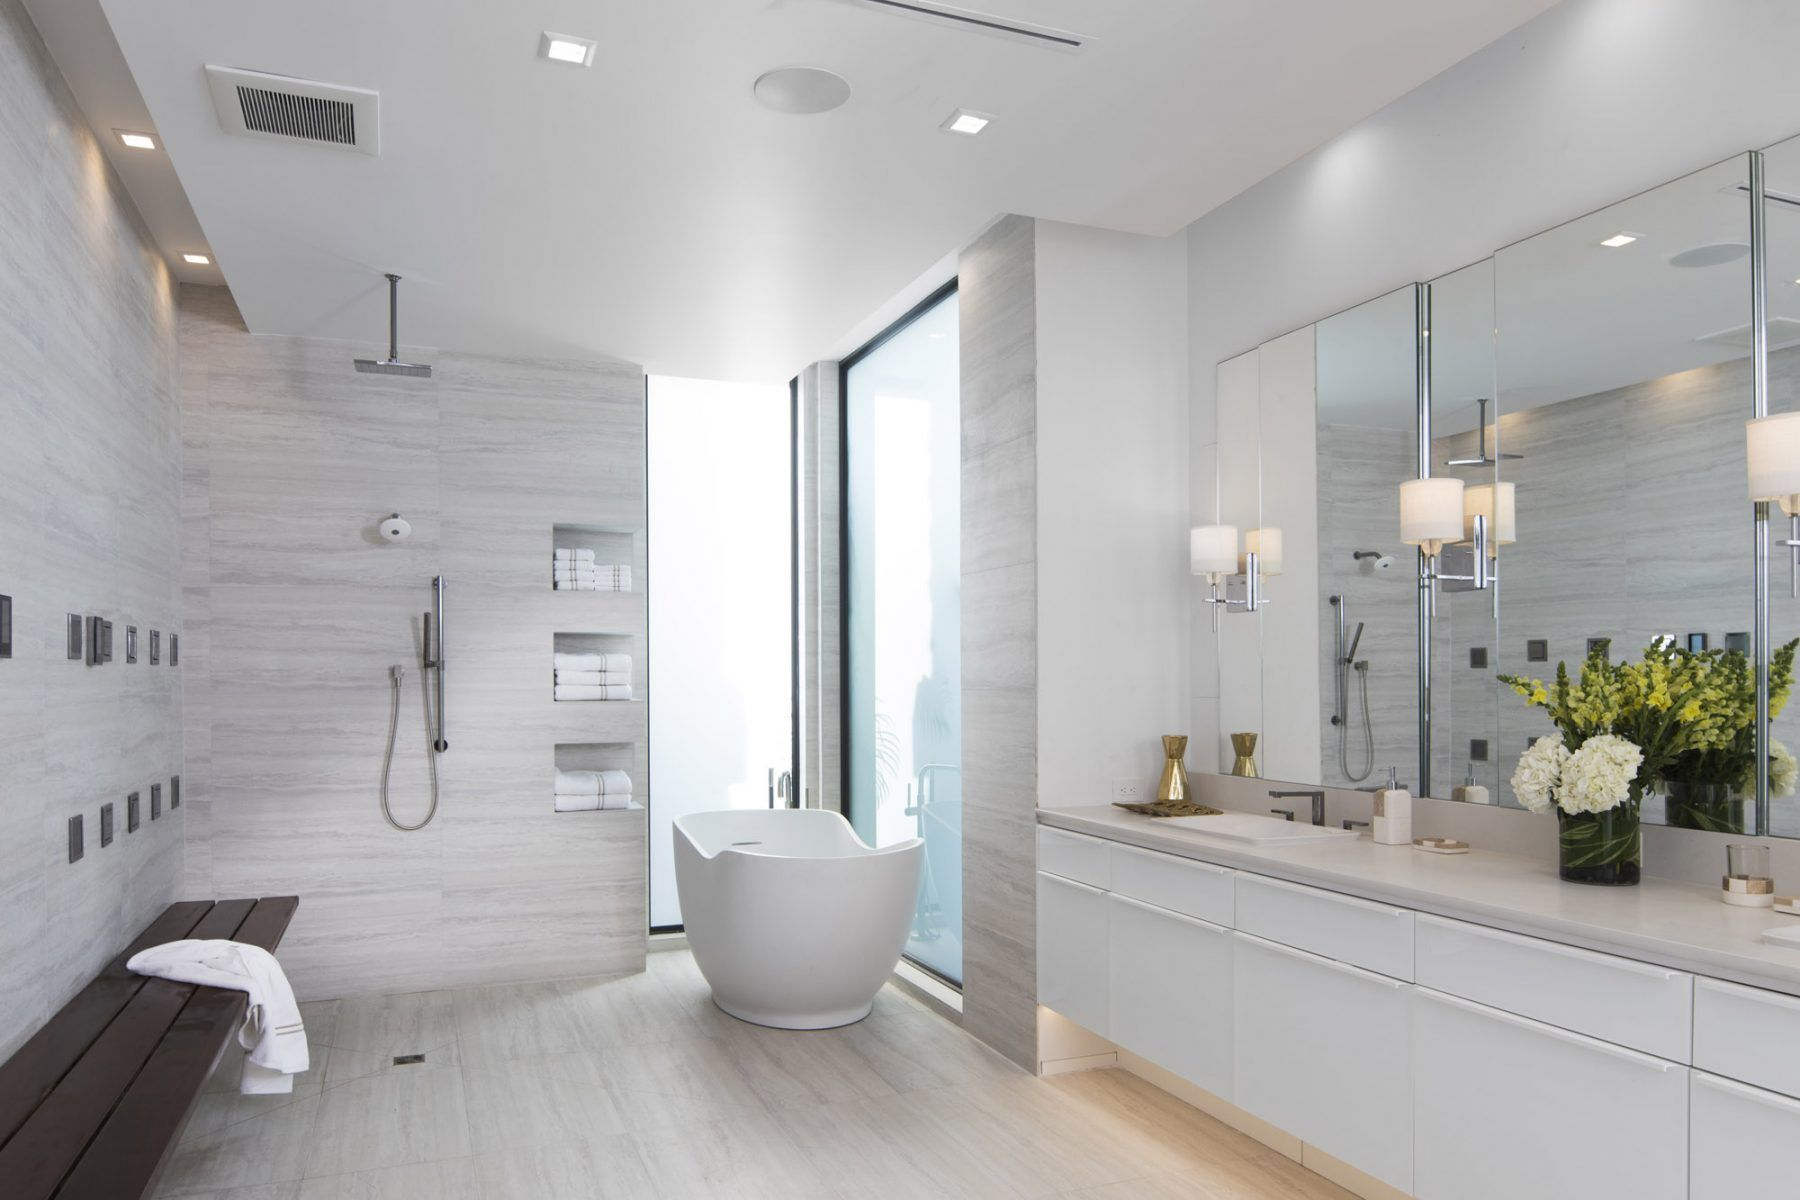 Small Bathroom Trends 2020 Photos And Videos Of Small Bathroom 2020 Bathroom Design Trends Bathroom Design Small Modern Small Bathroom Trends